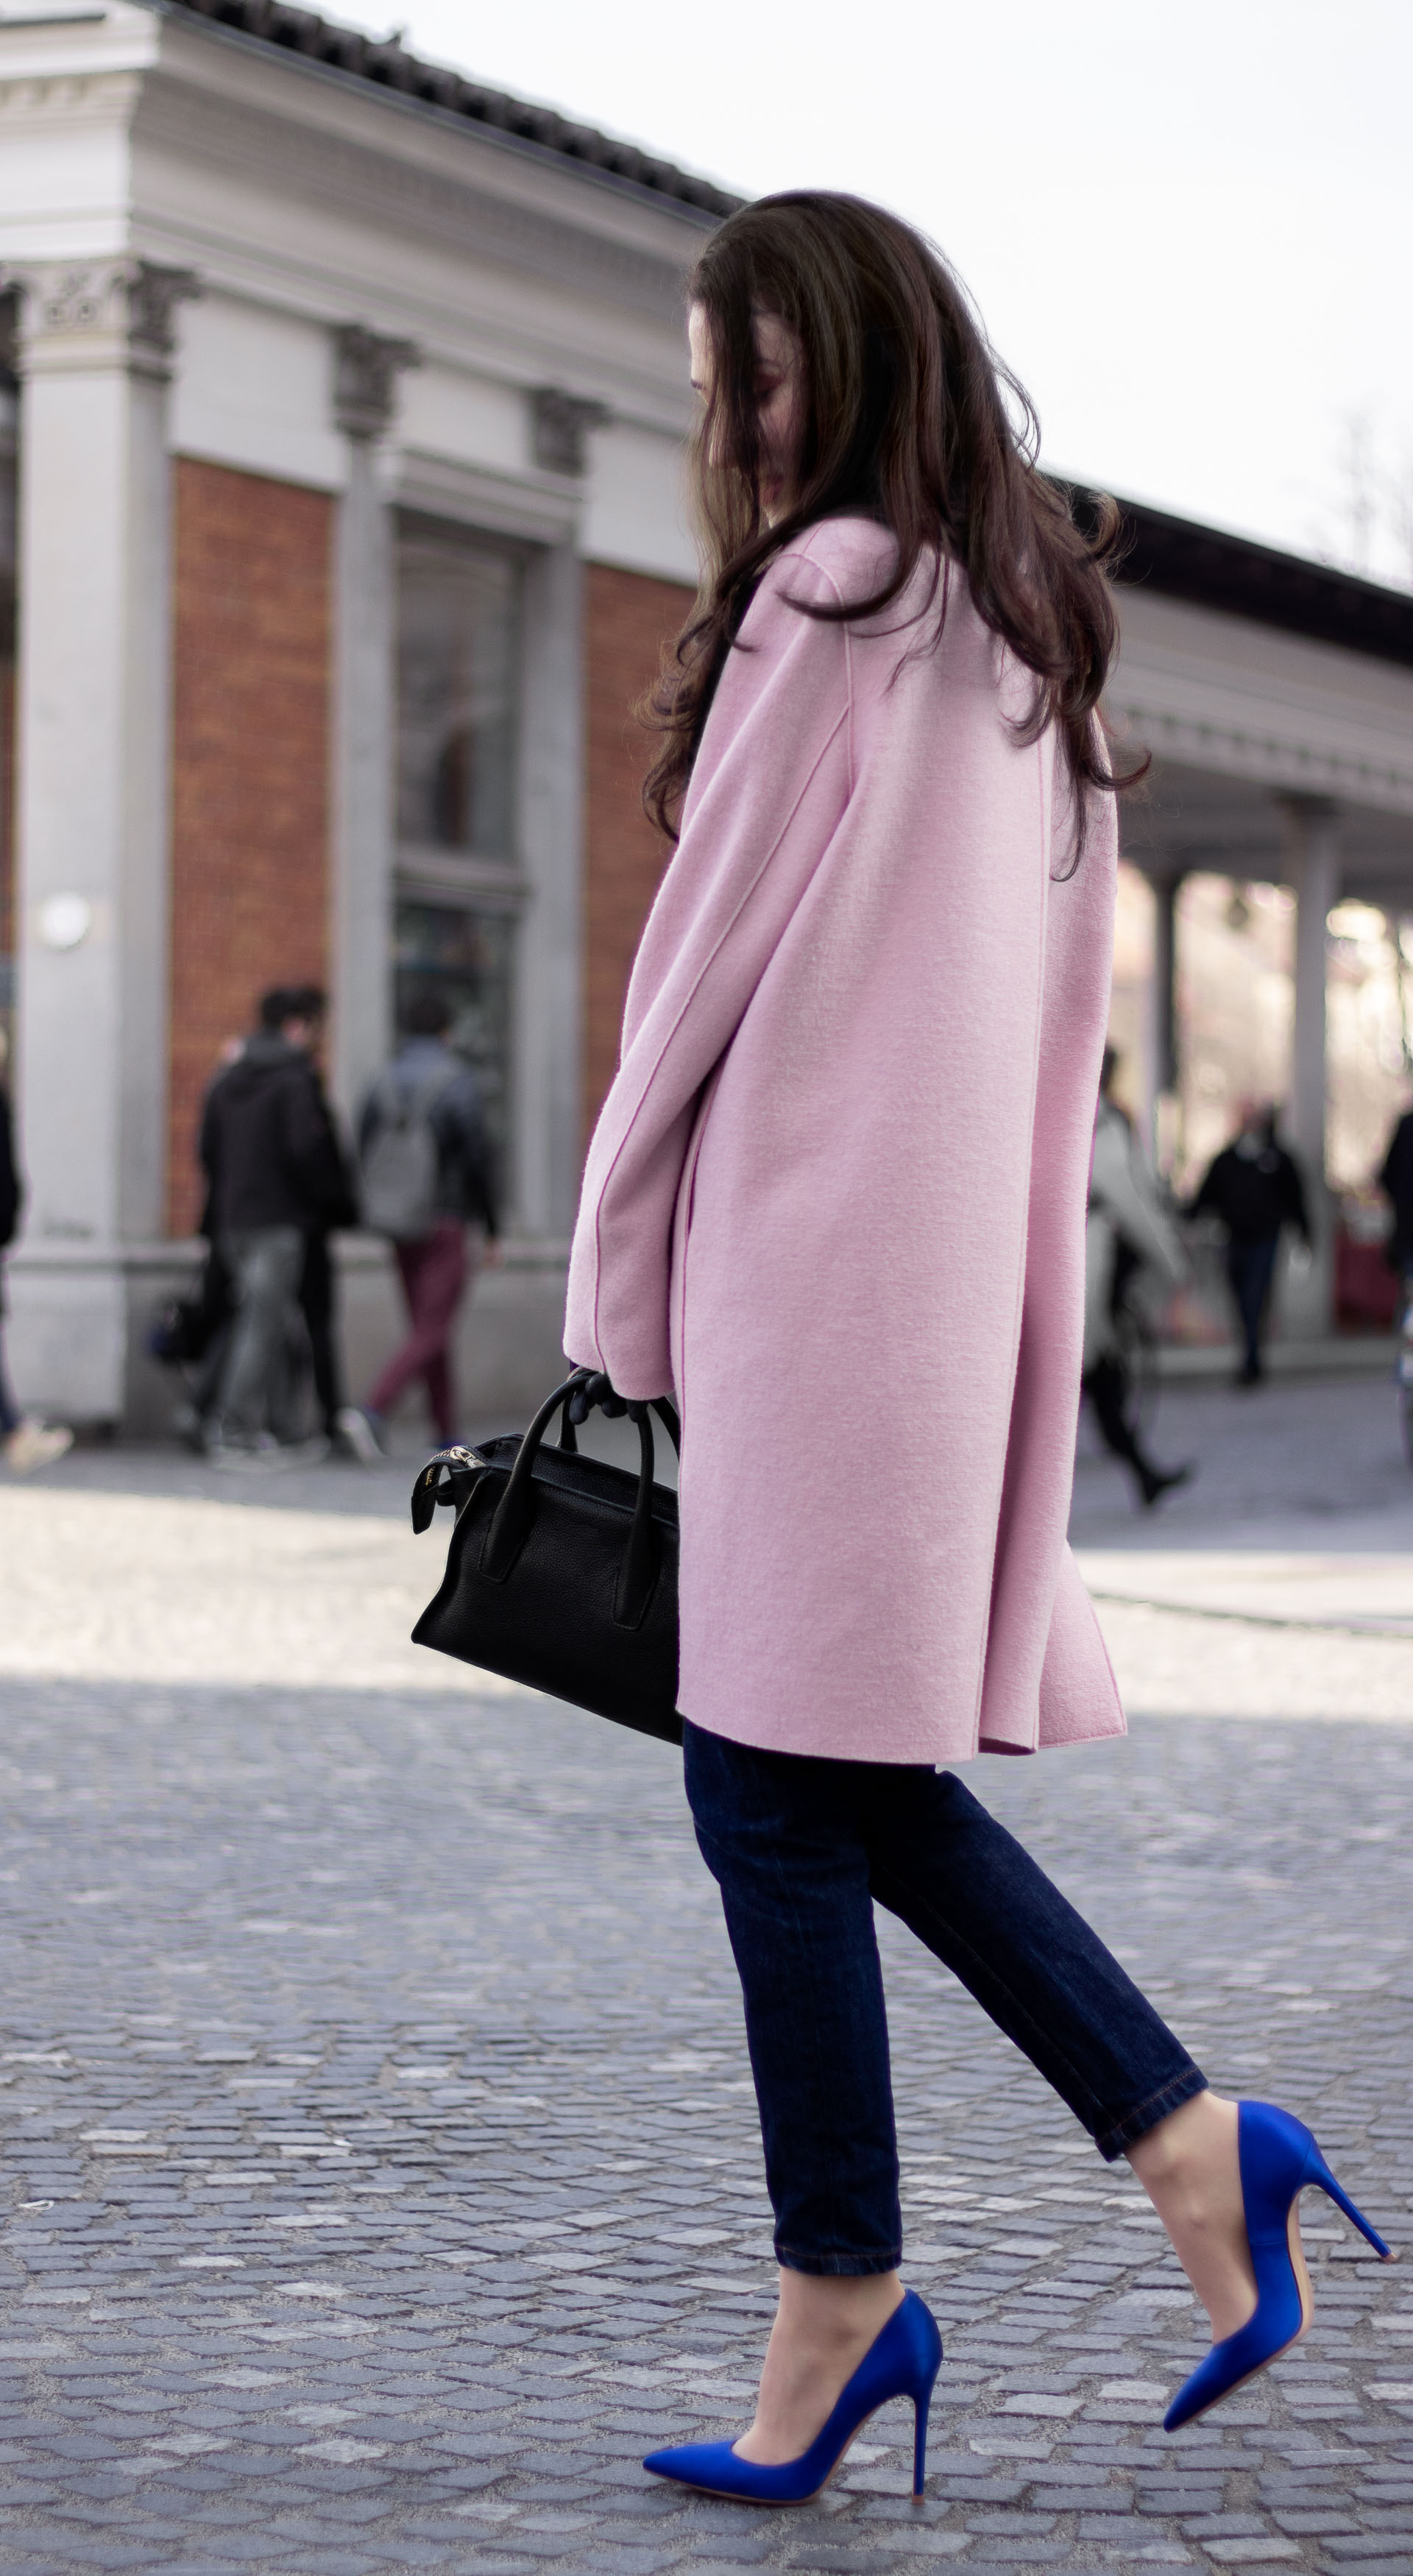 Must follow Fashion Blogger Veronika Lipar of Brunette from Wall Street dressed in oversize pink Harris Wharf London coat A.P.C. Paris dark blue denim jeans Gianvito Rossi blue court shoes black top handle bag Forzieri blue leather gloves pearl hairpin on the street